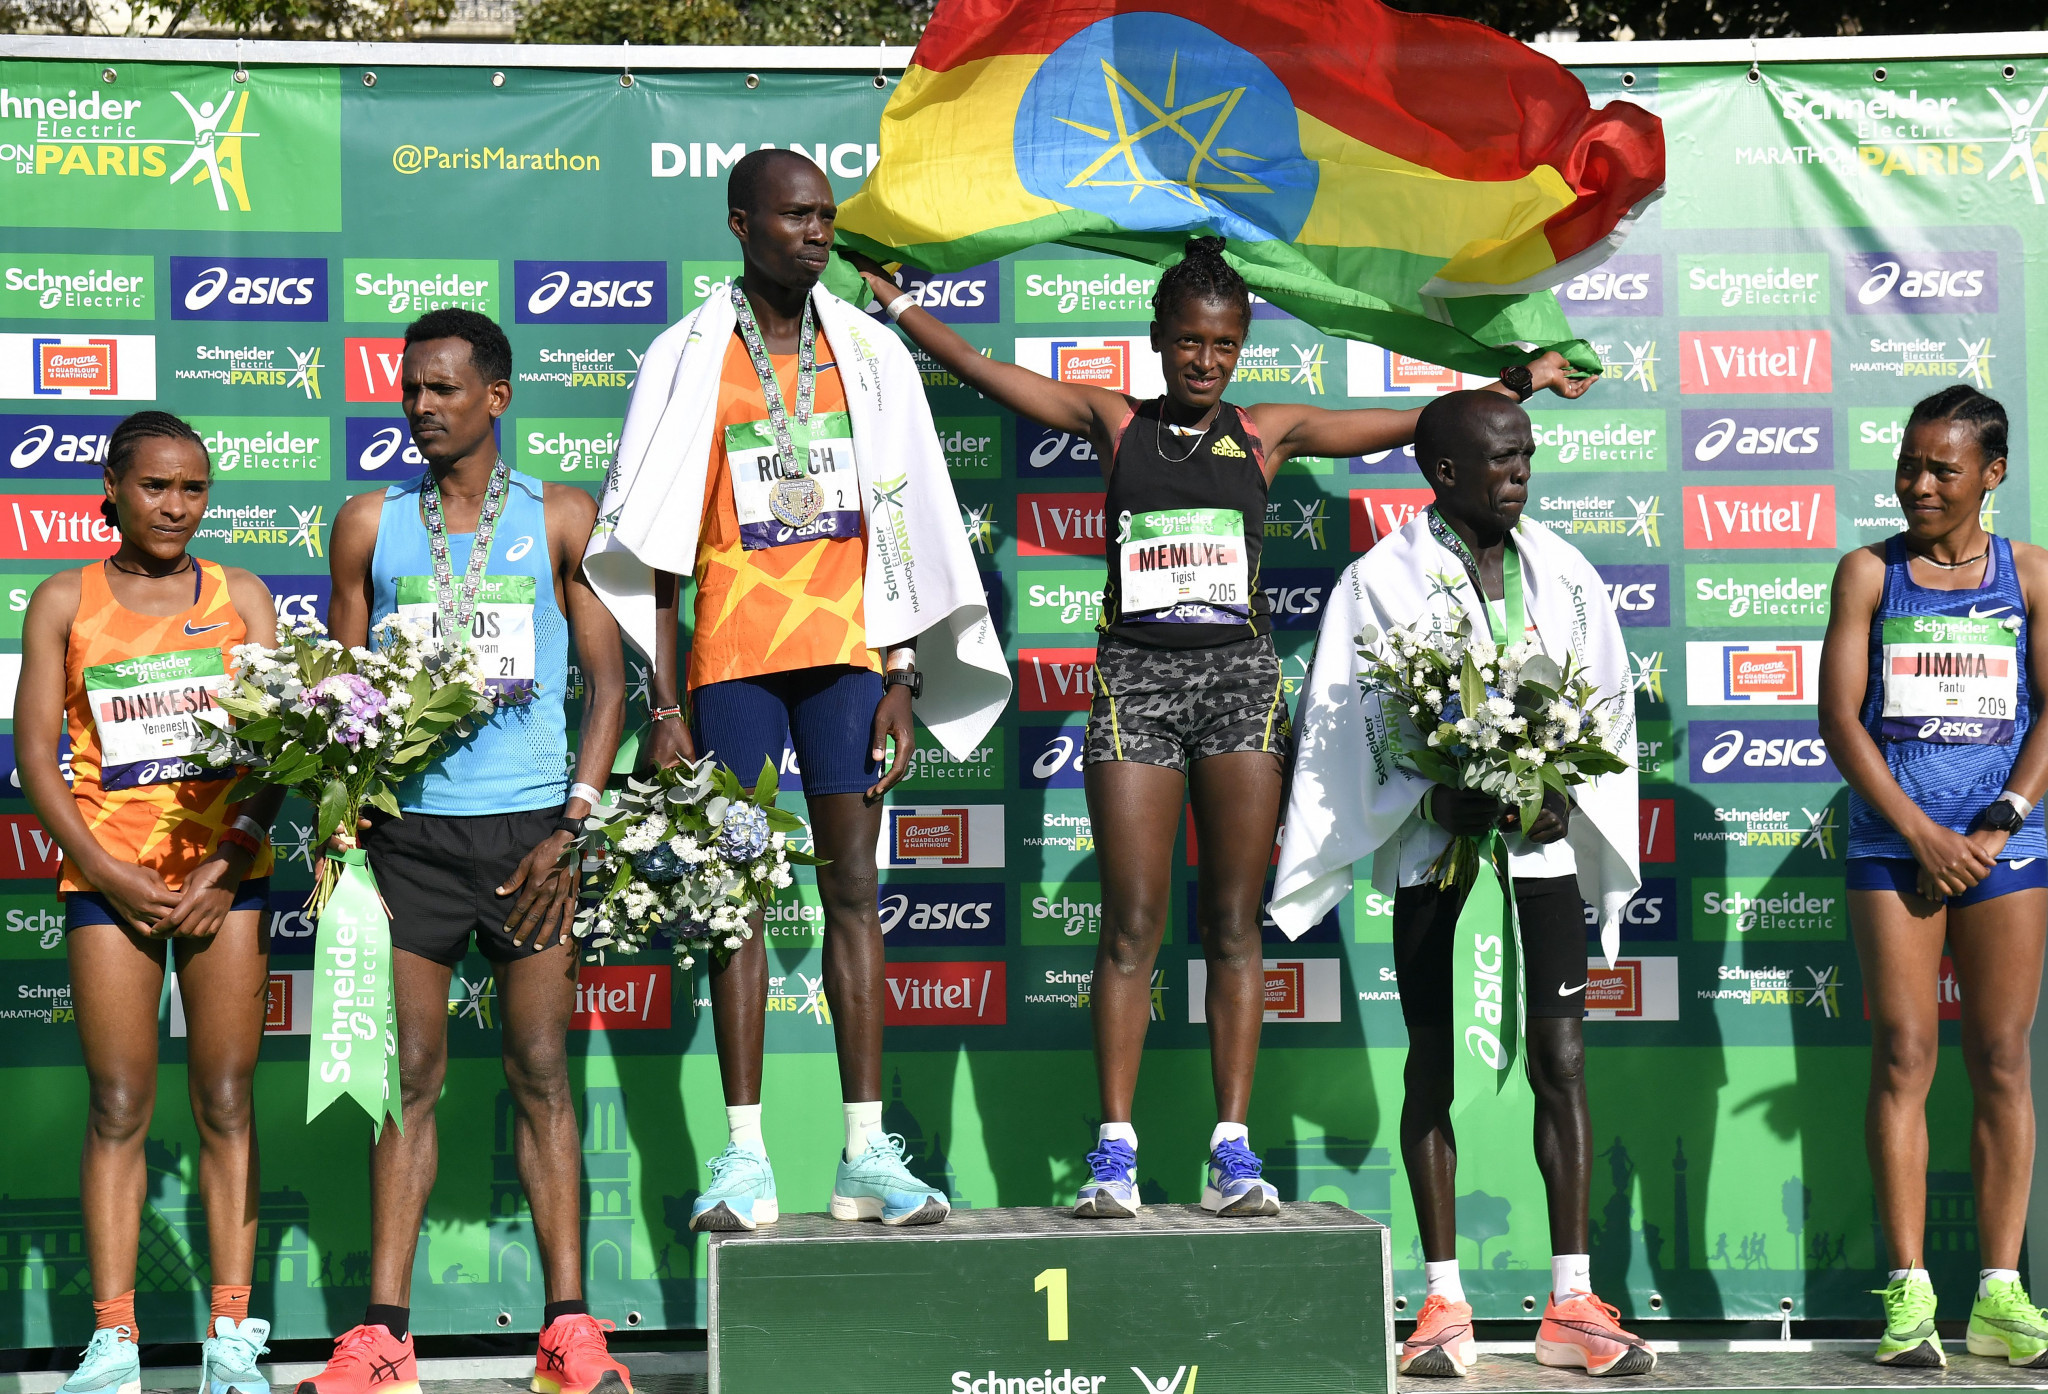 Rotich sets new course record to win men's Paris Marathon, while Ethiopia secures all three women's podium places